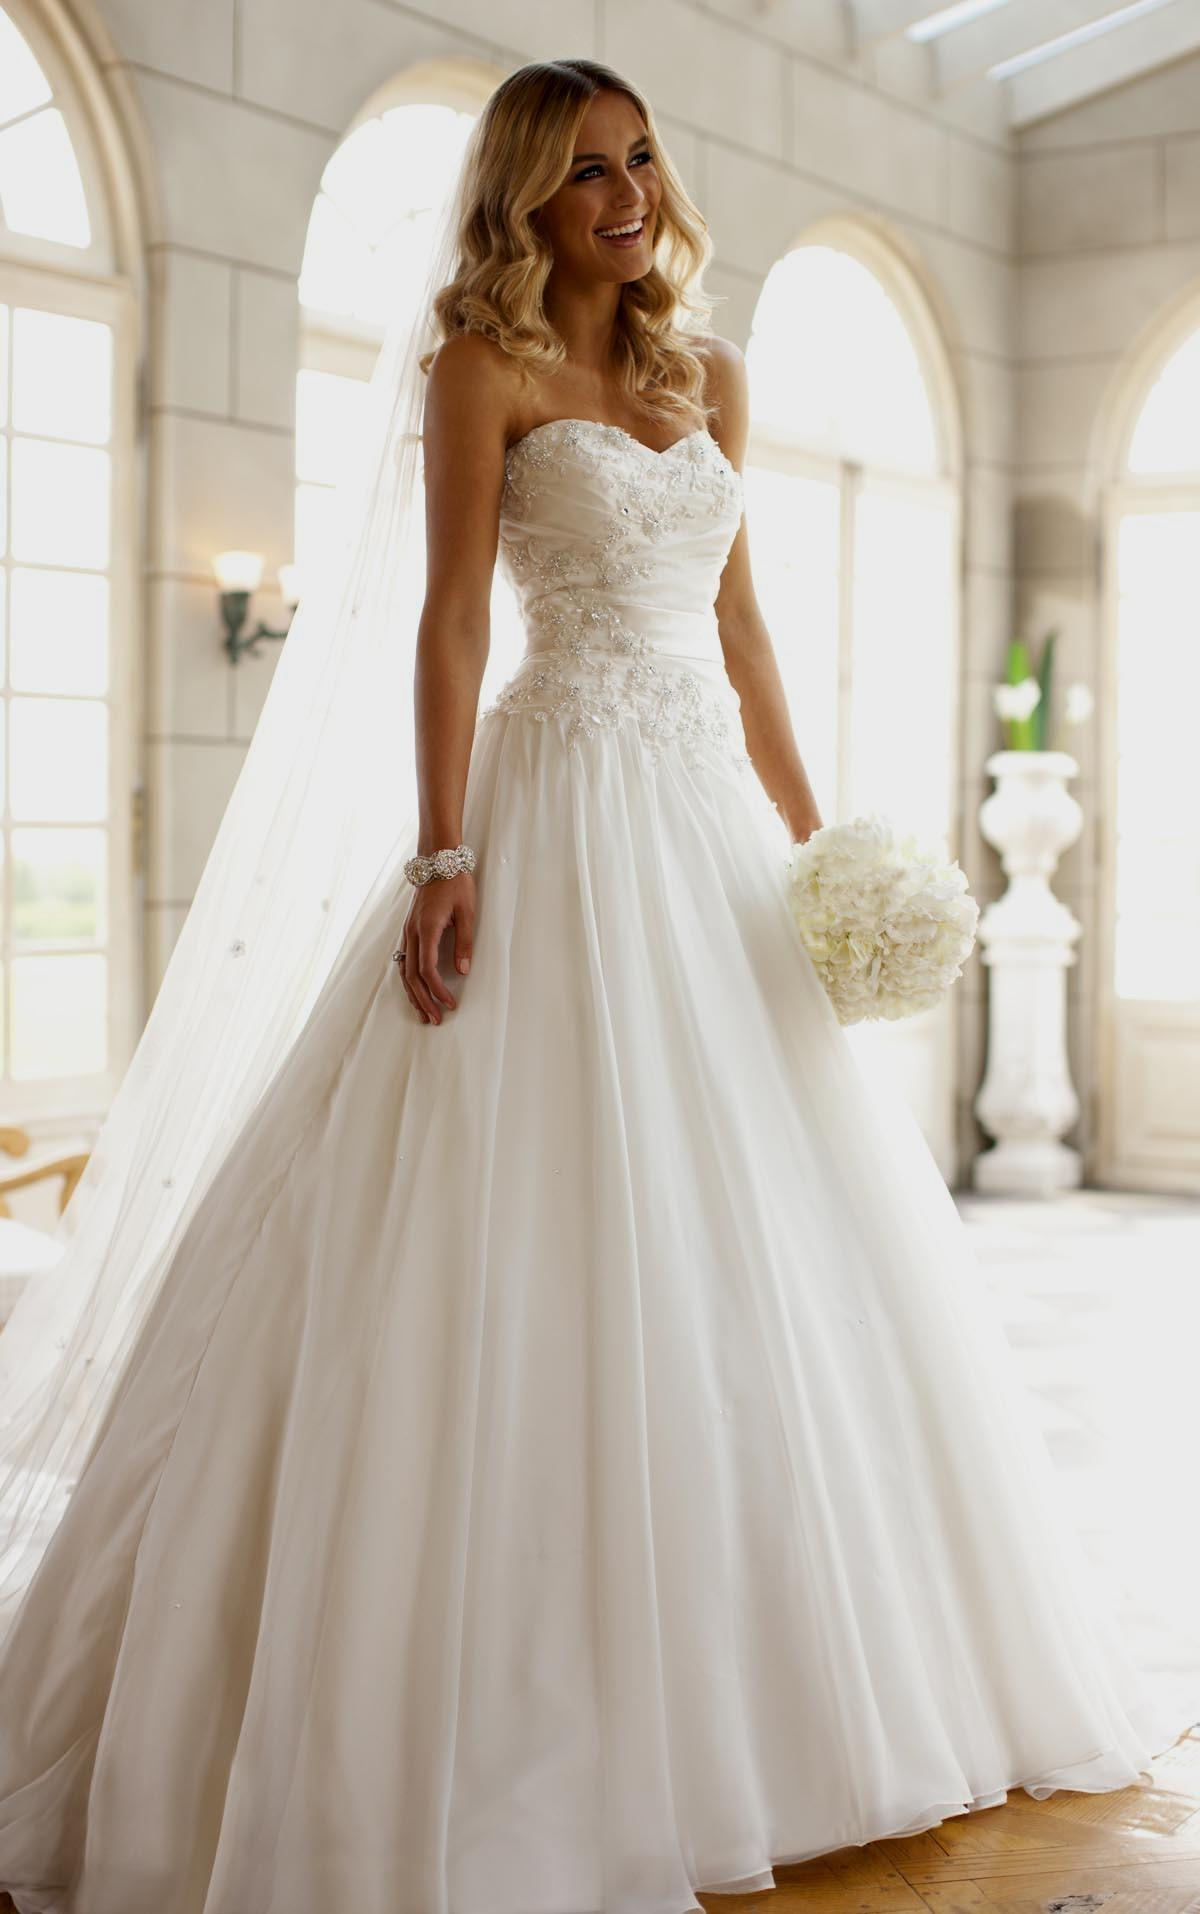 Strapless wedding dress with asymmetrical draperies